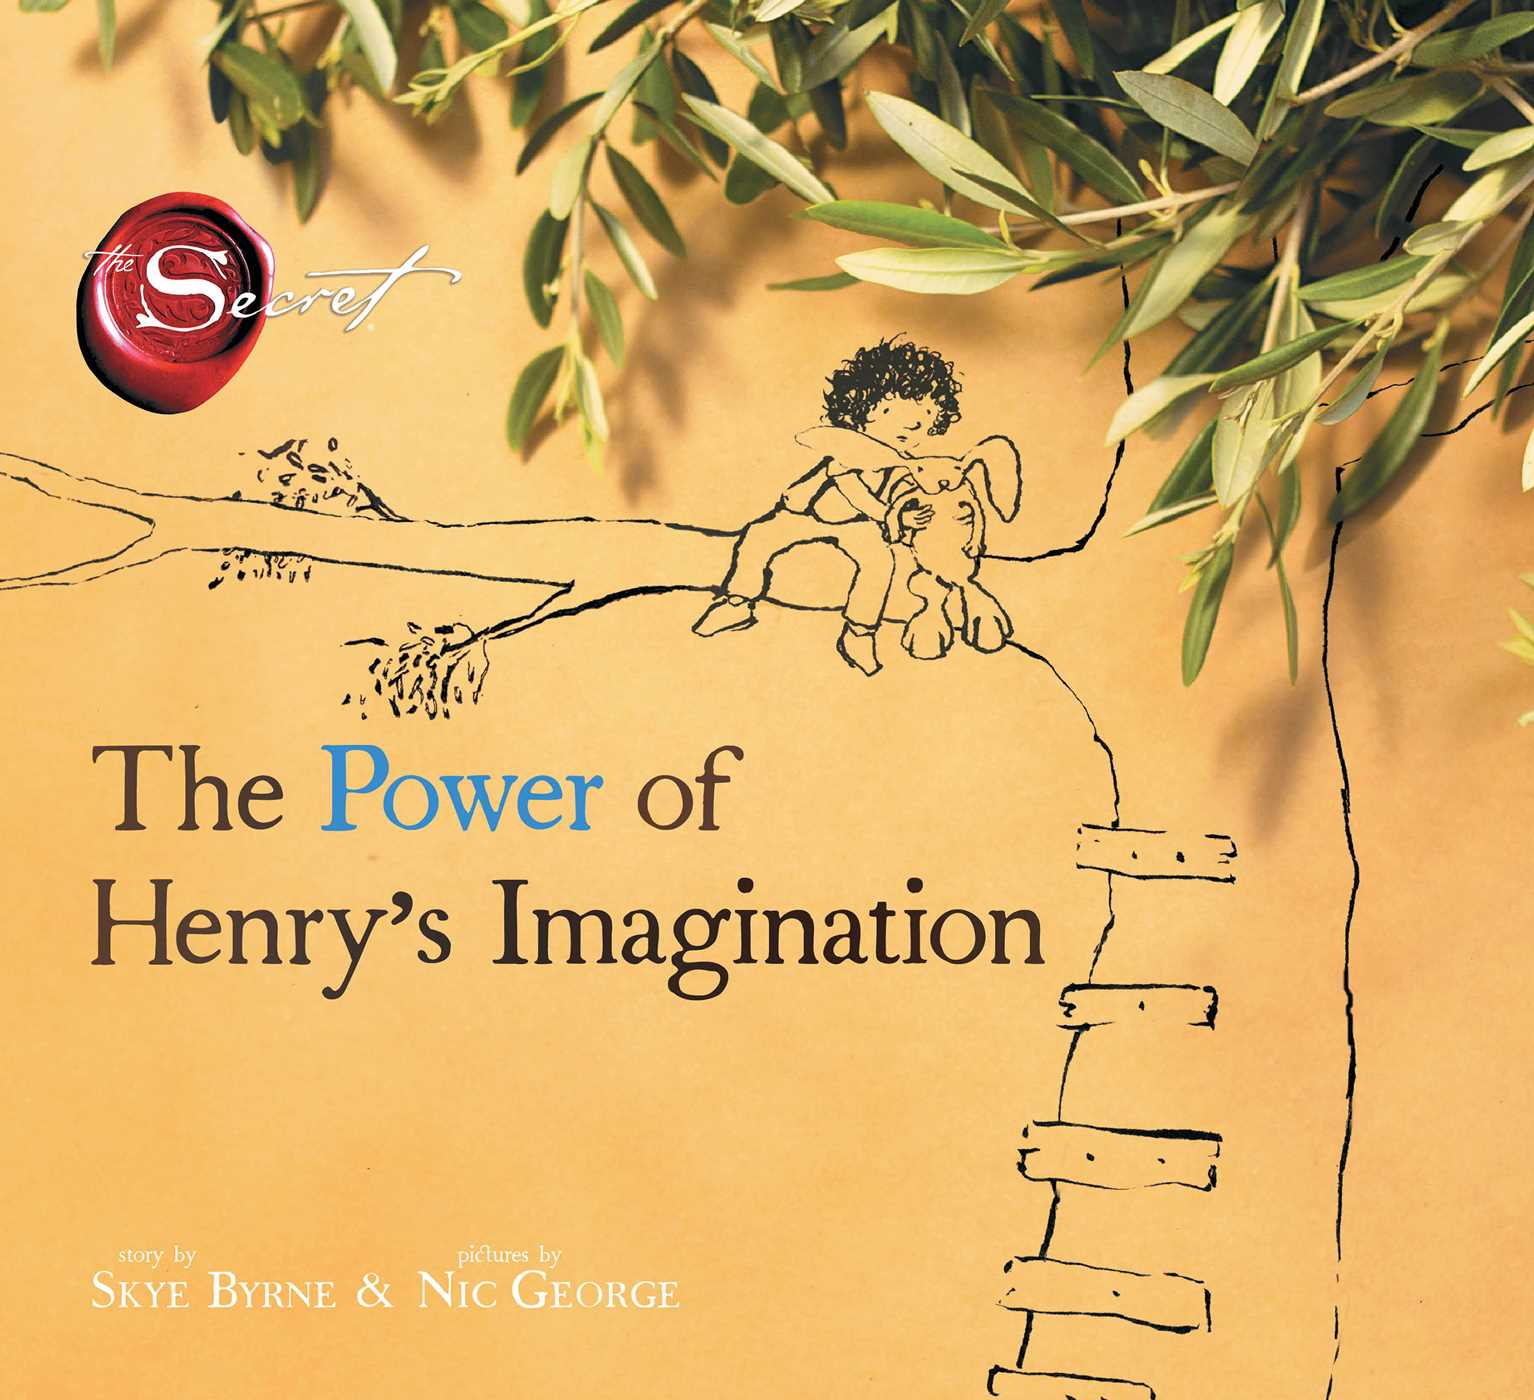 The power of henrys imagination 9781471145193 hr